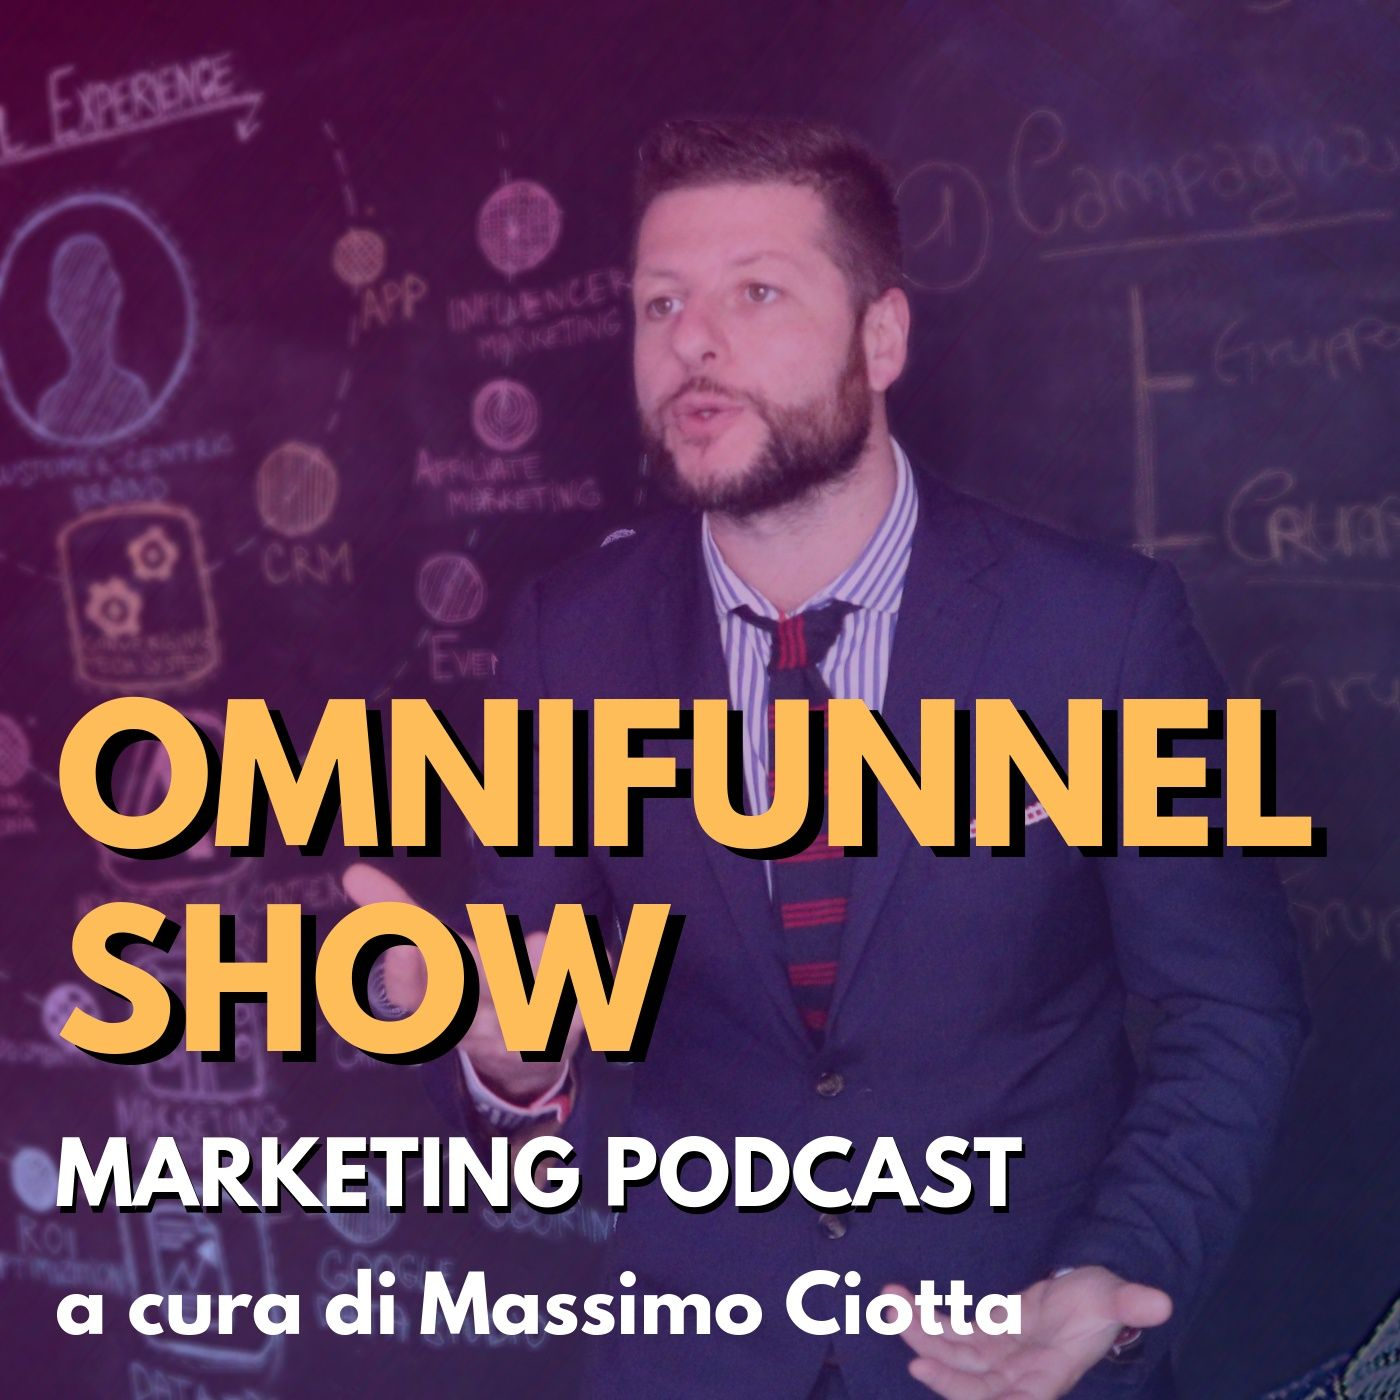 EP#10 - E' tutto digitale quel che luccica? Marketing online vs marketing tradizionale